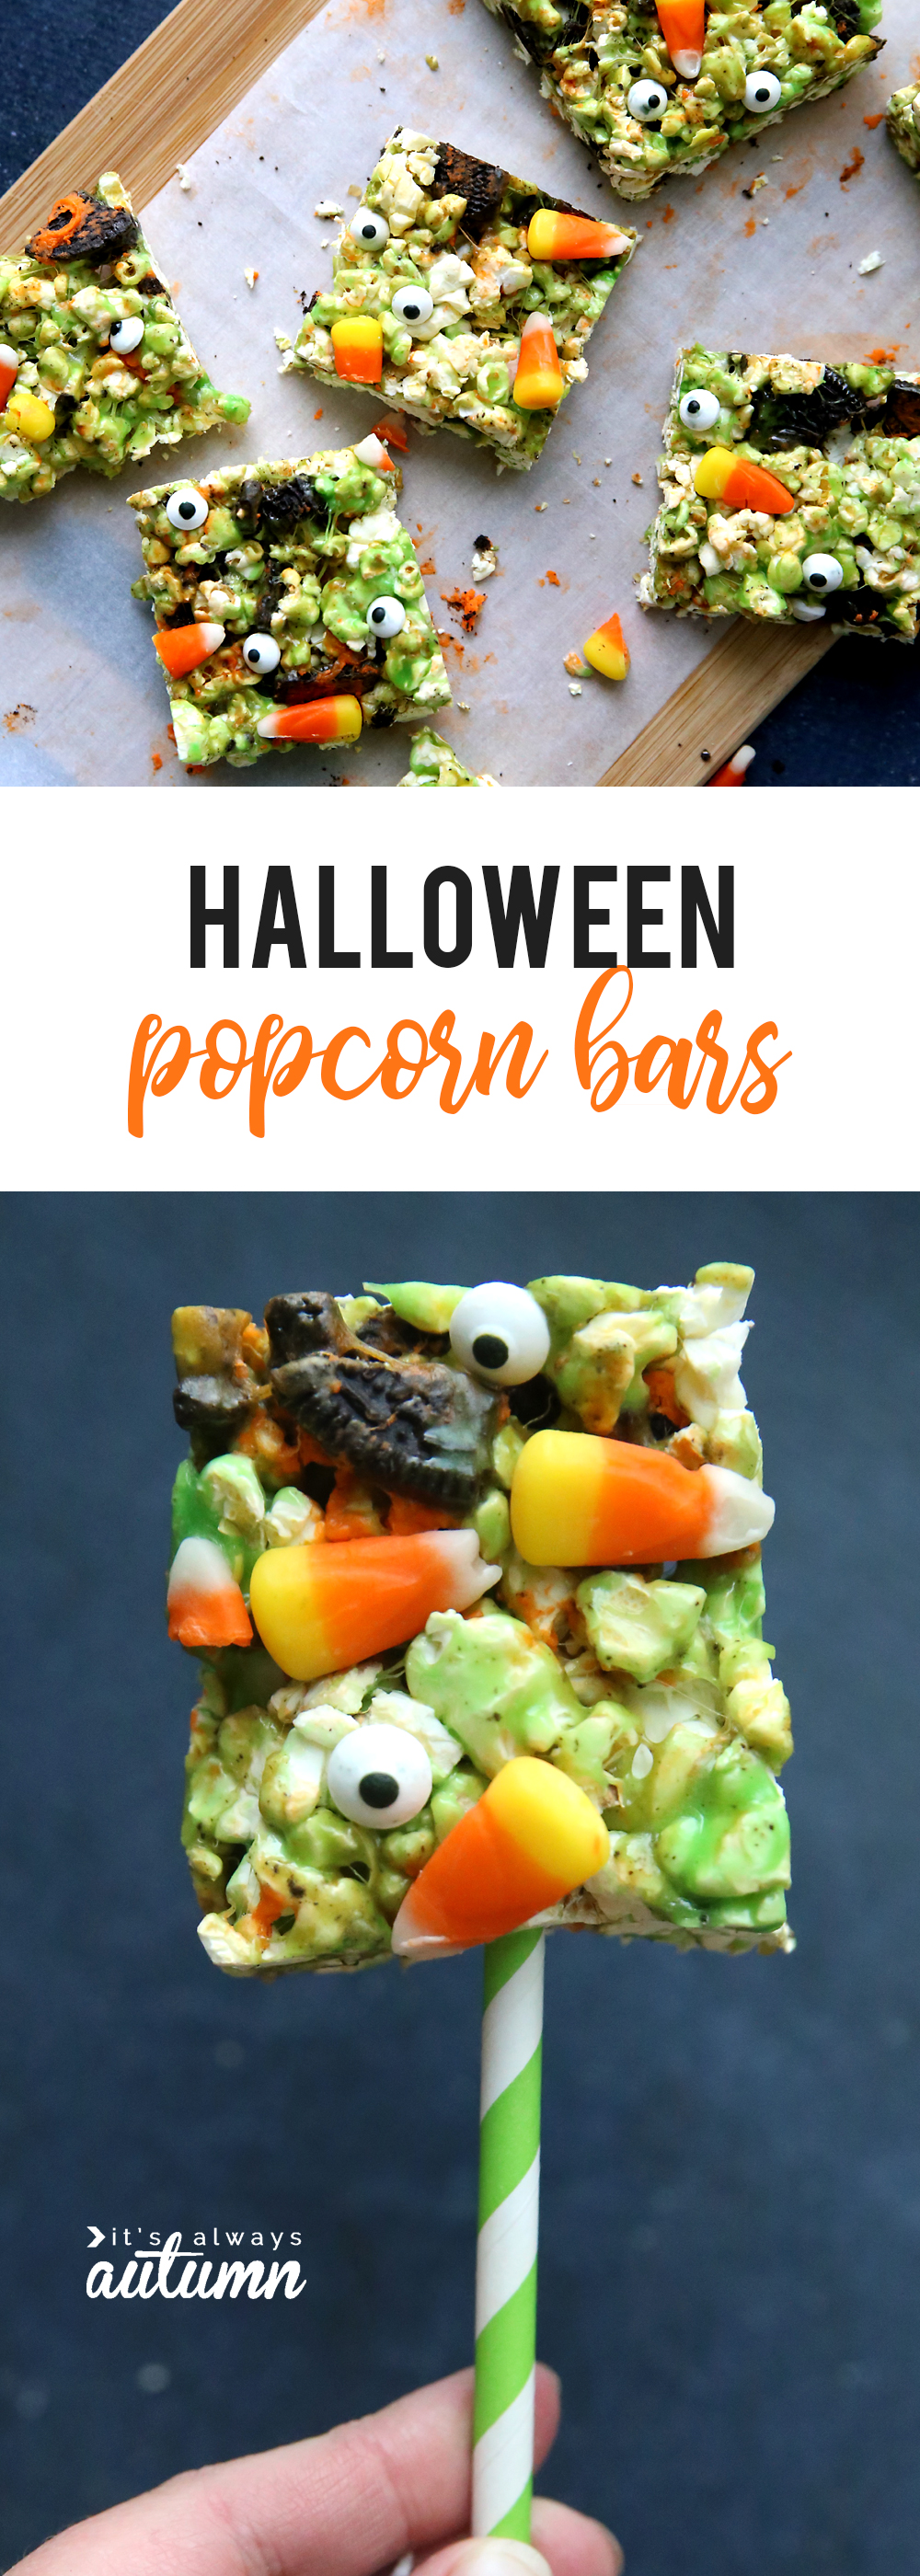 Easy halloween popcorn balls! I made them in bar form so they're even simpler. Fun Halloween treat to make with your kids.